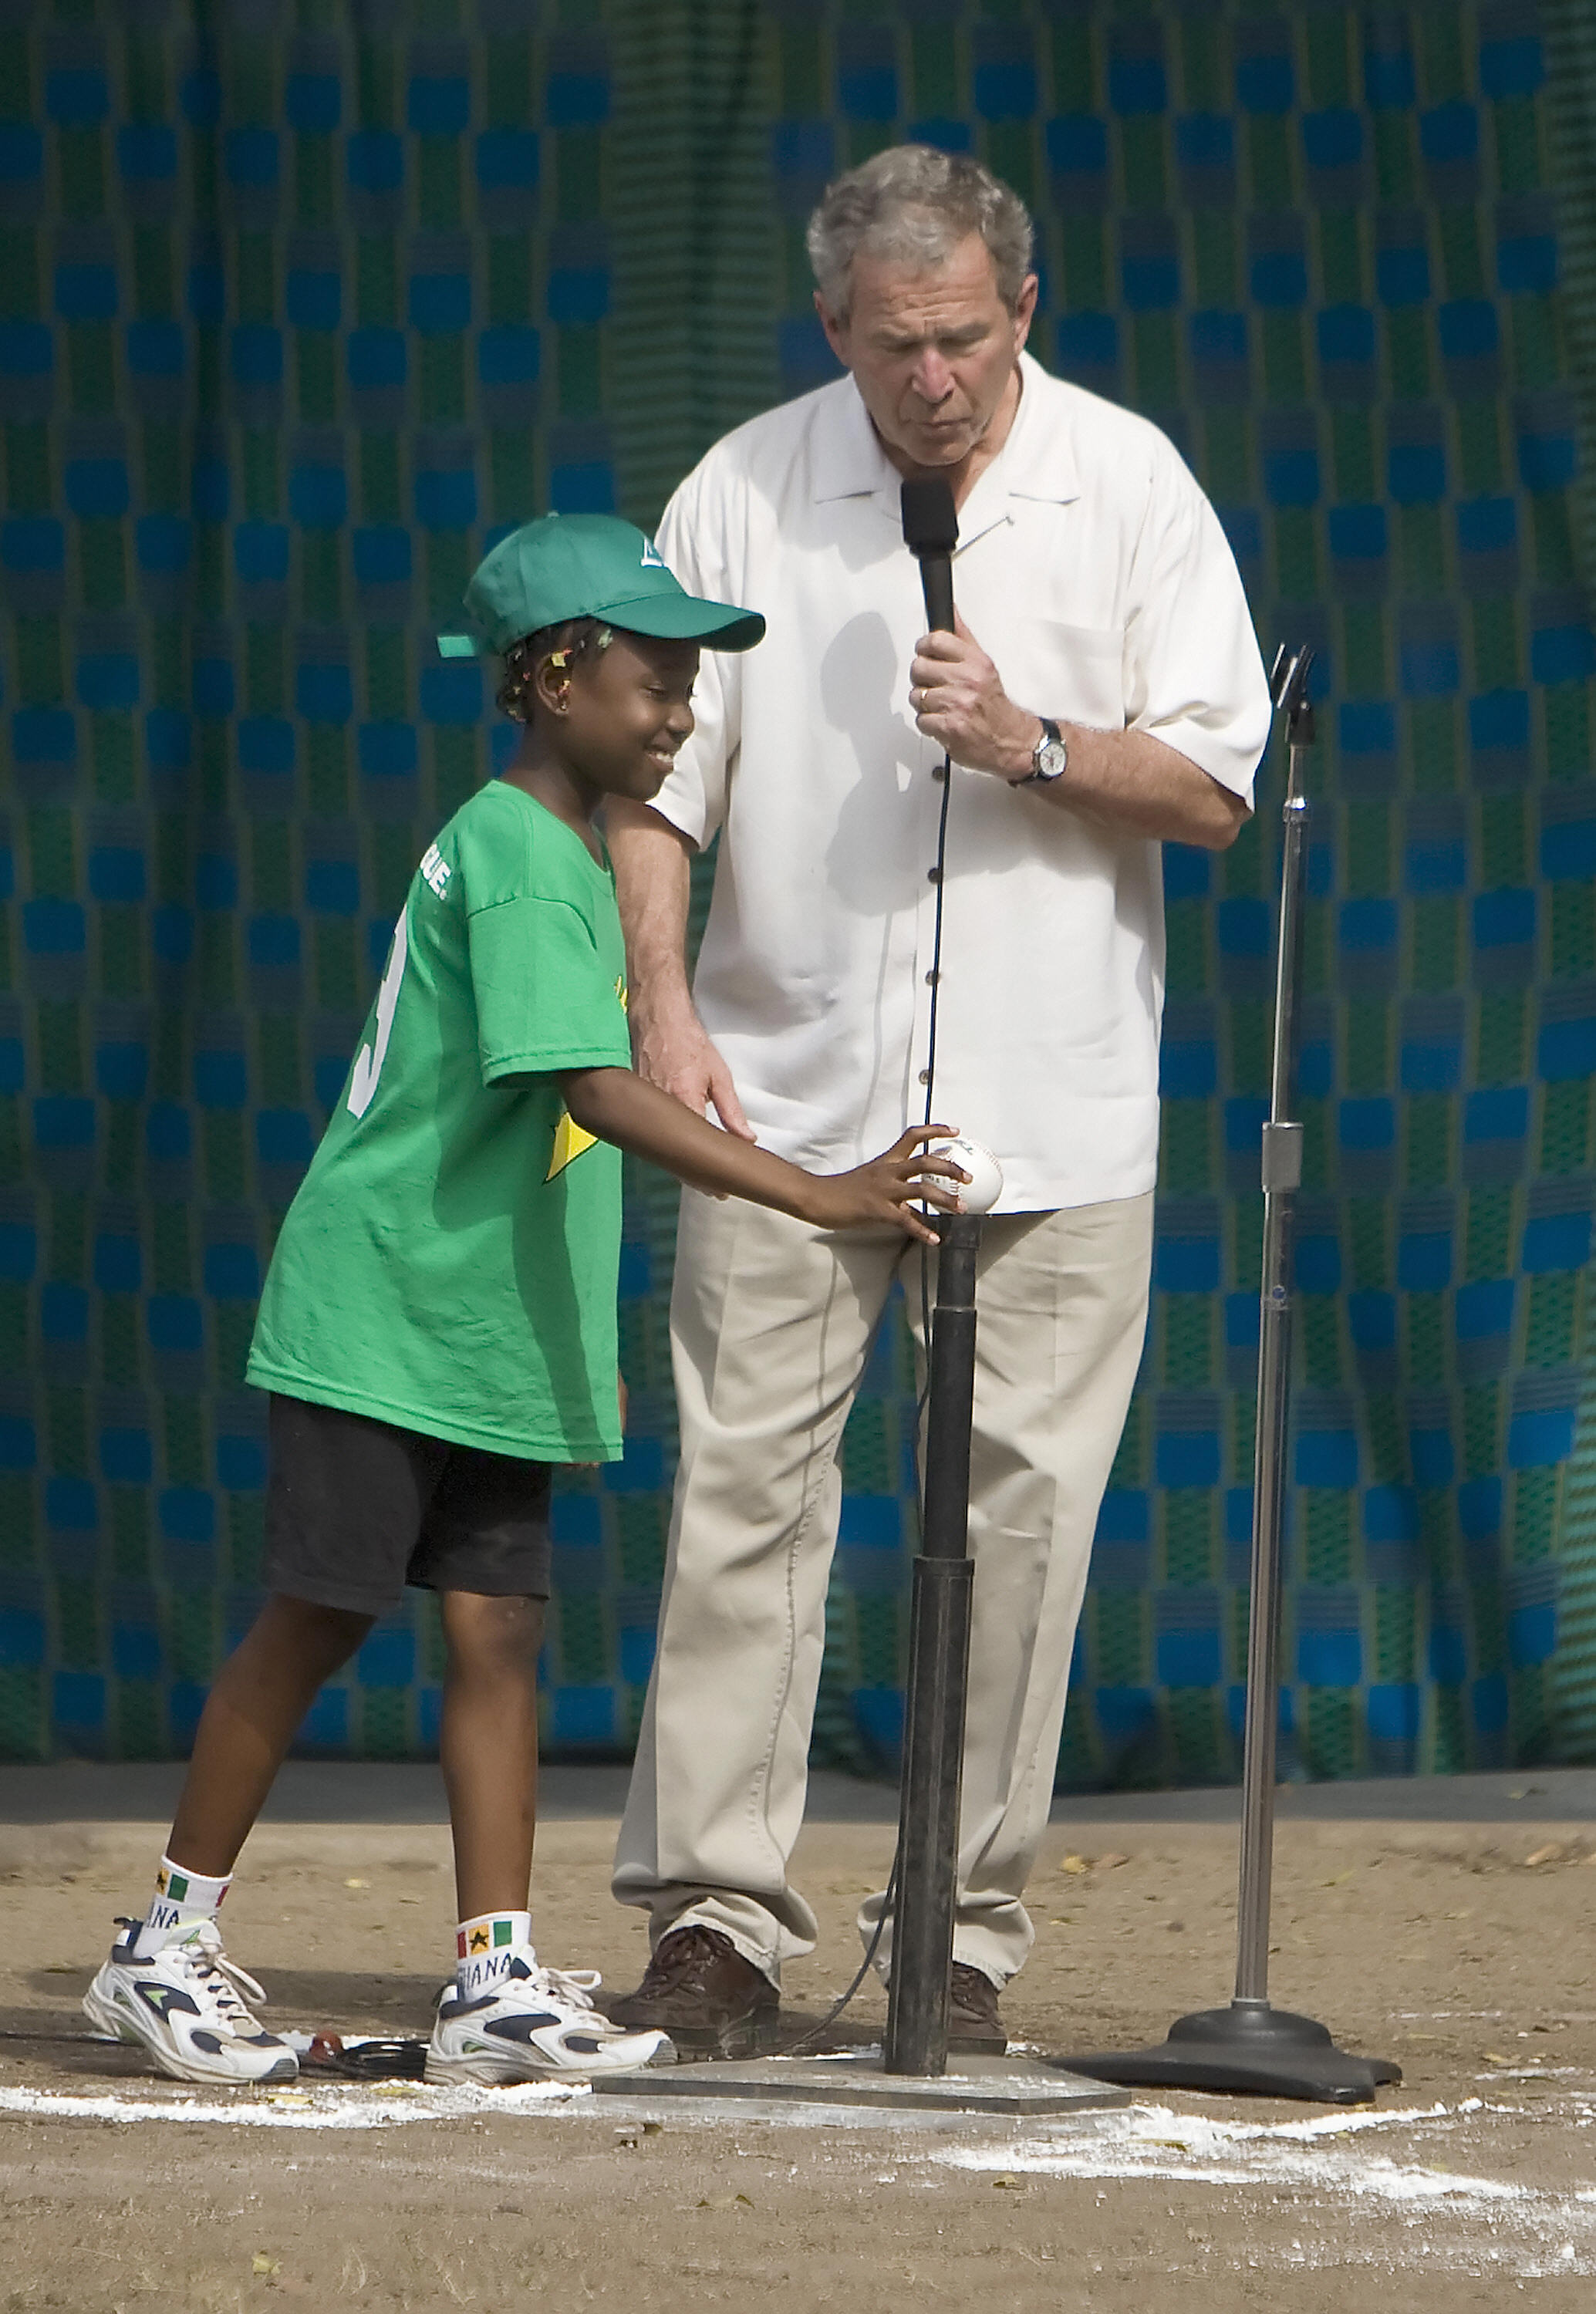 Bush starts a t-ball game in Ghana.